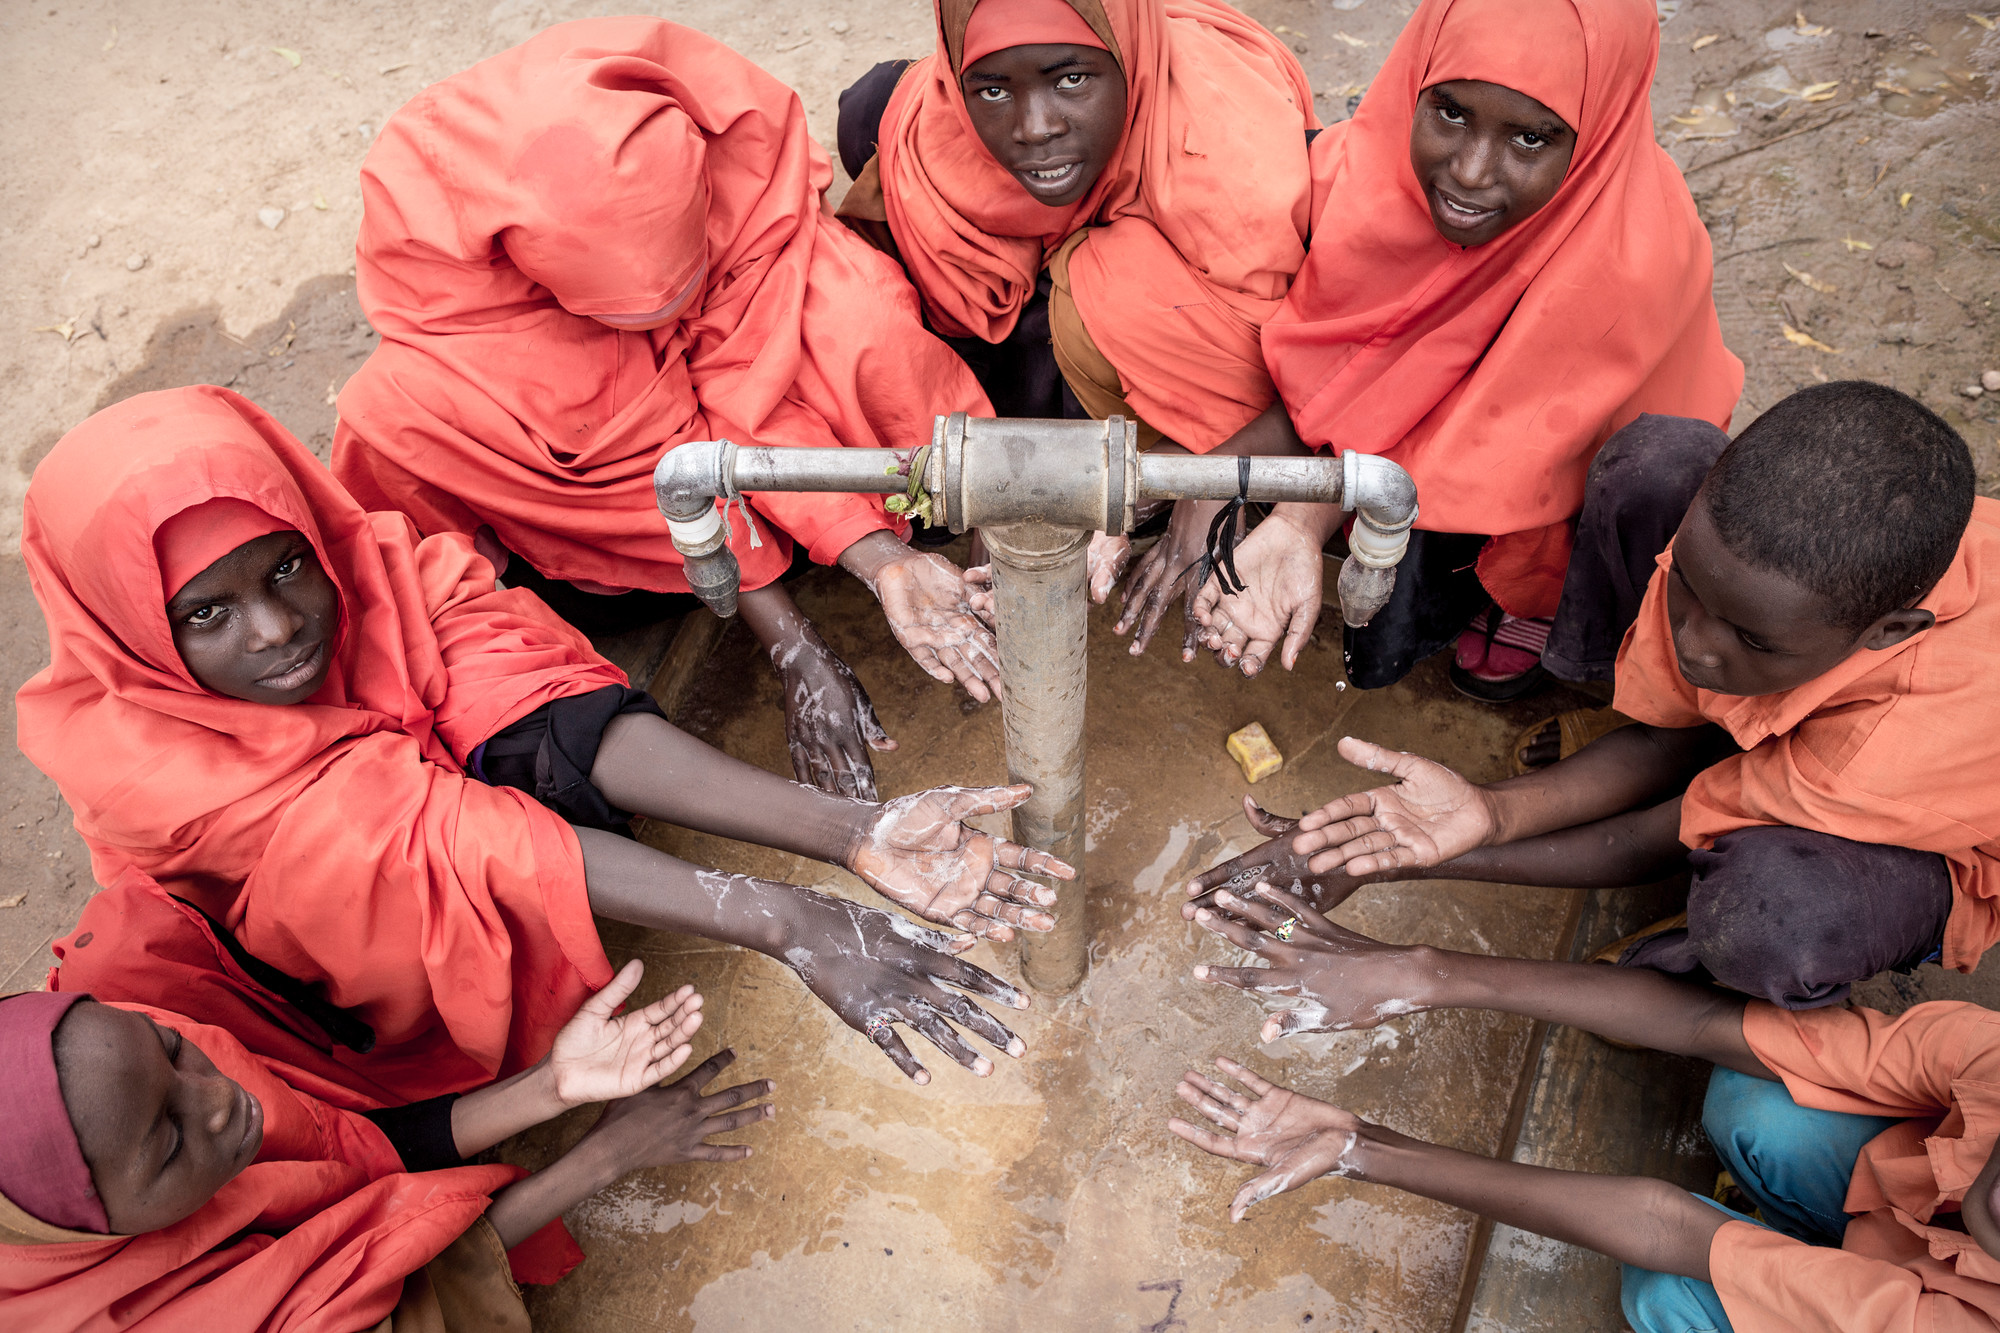 Prior to the 2020 coronavirus pandemic, children learn hygiene best practices at a hand-washing station in Dadaab refugee camp. Photo by CARE/Sven Torfinn